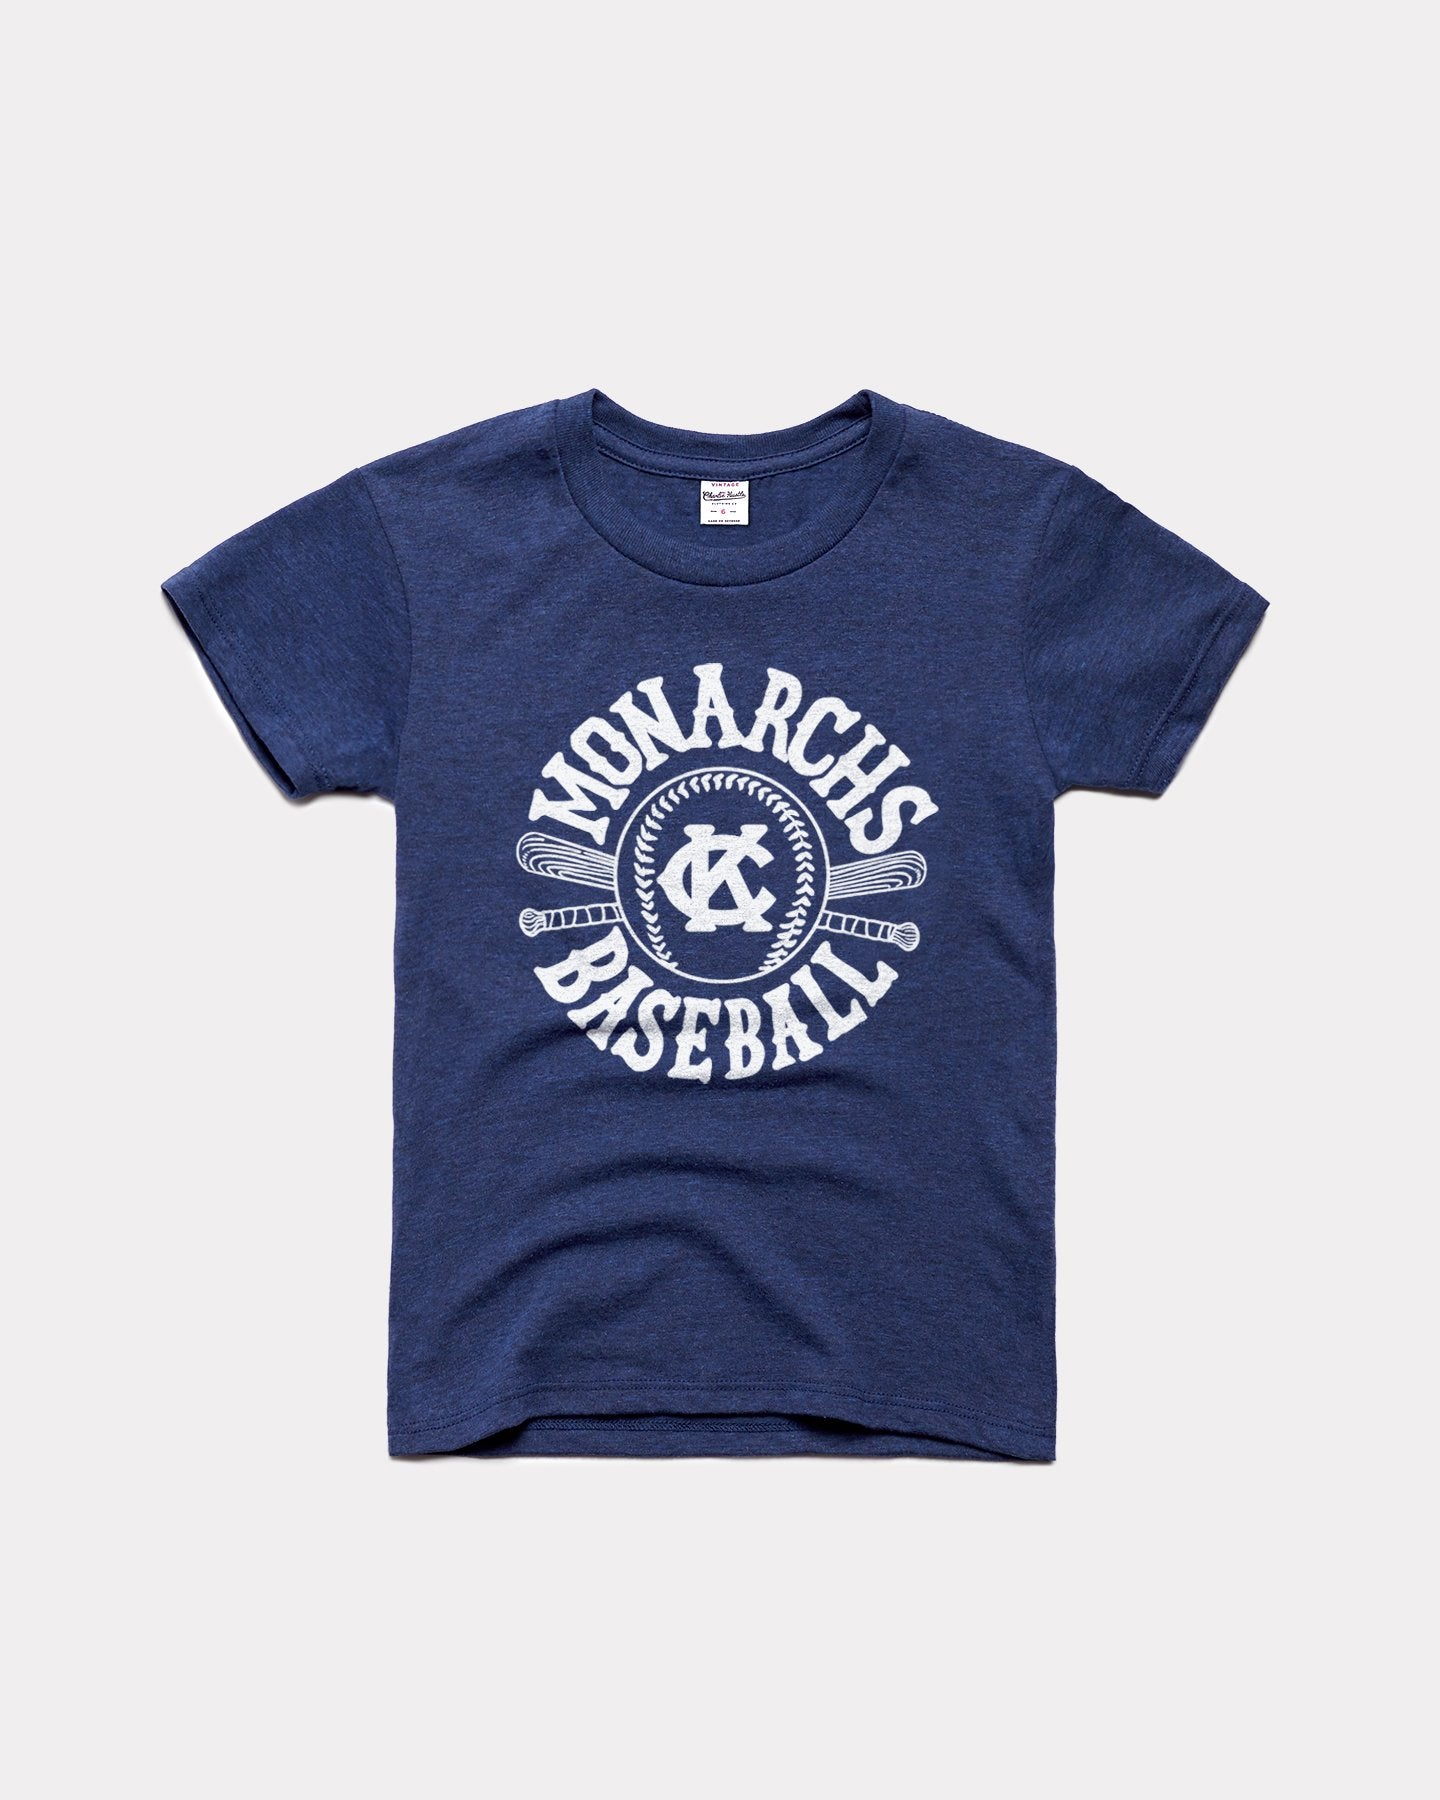 Navy Kids Kansas City Monarchs Baseball Vintage Youth T-Shirt